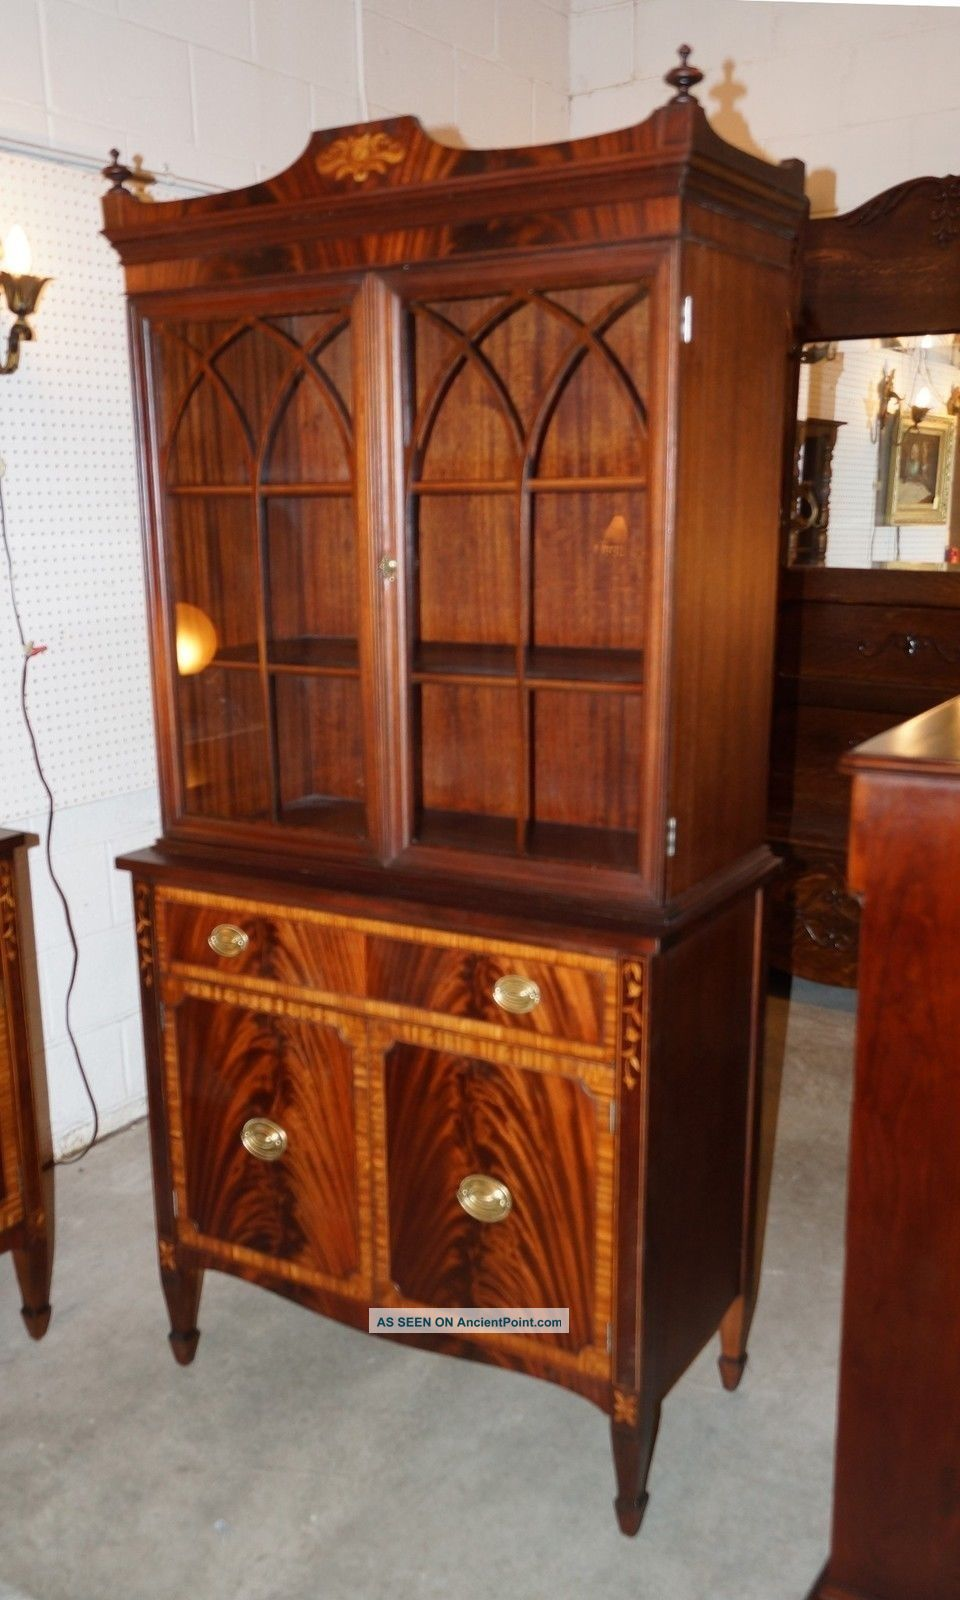 Antique Flame Mahogany Sheraton Style Banded & Inlaid Breakfront China Cabinet 1900-1950 photo